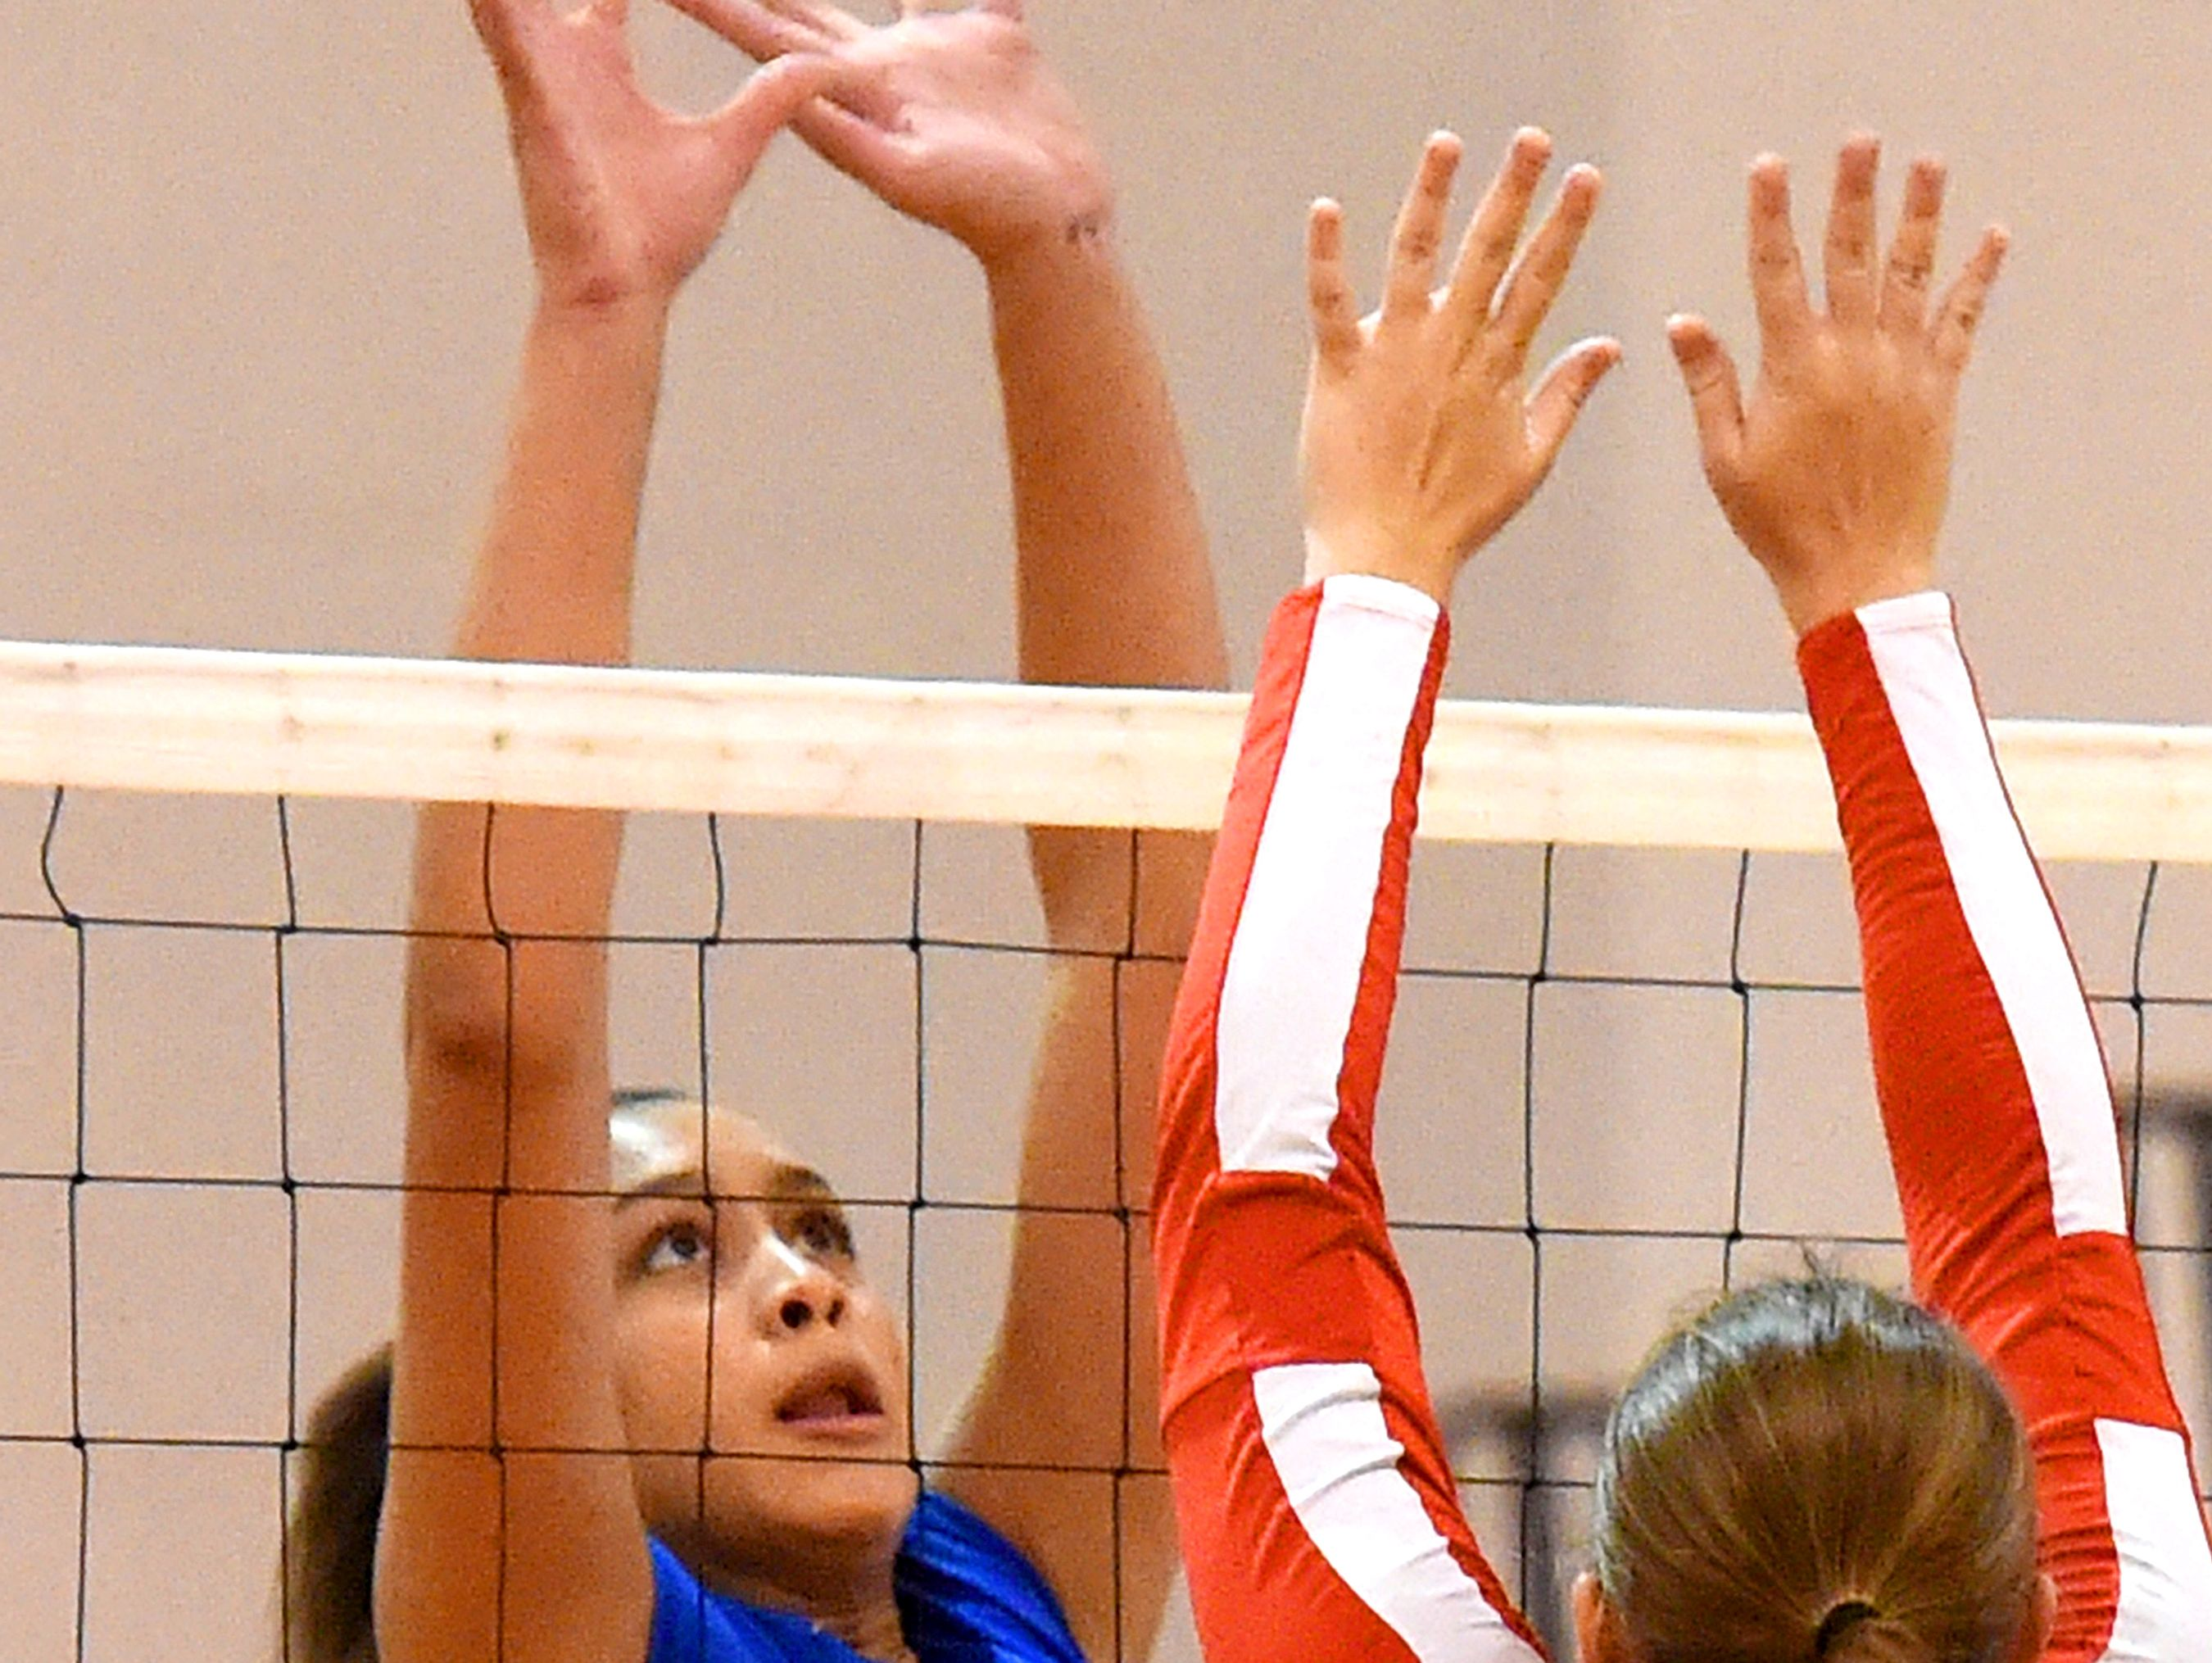 Fort Defiance's Jayden Beasley faces off against Riverheads' Emma Casto at the net during a volleyball match played in Greenville on Thursday, Sept. 9, 2016.